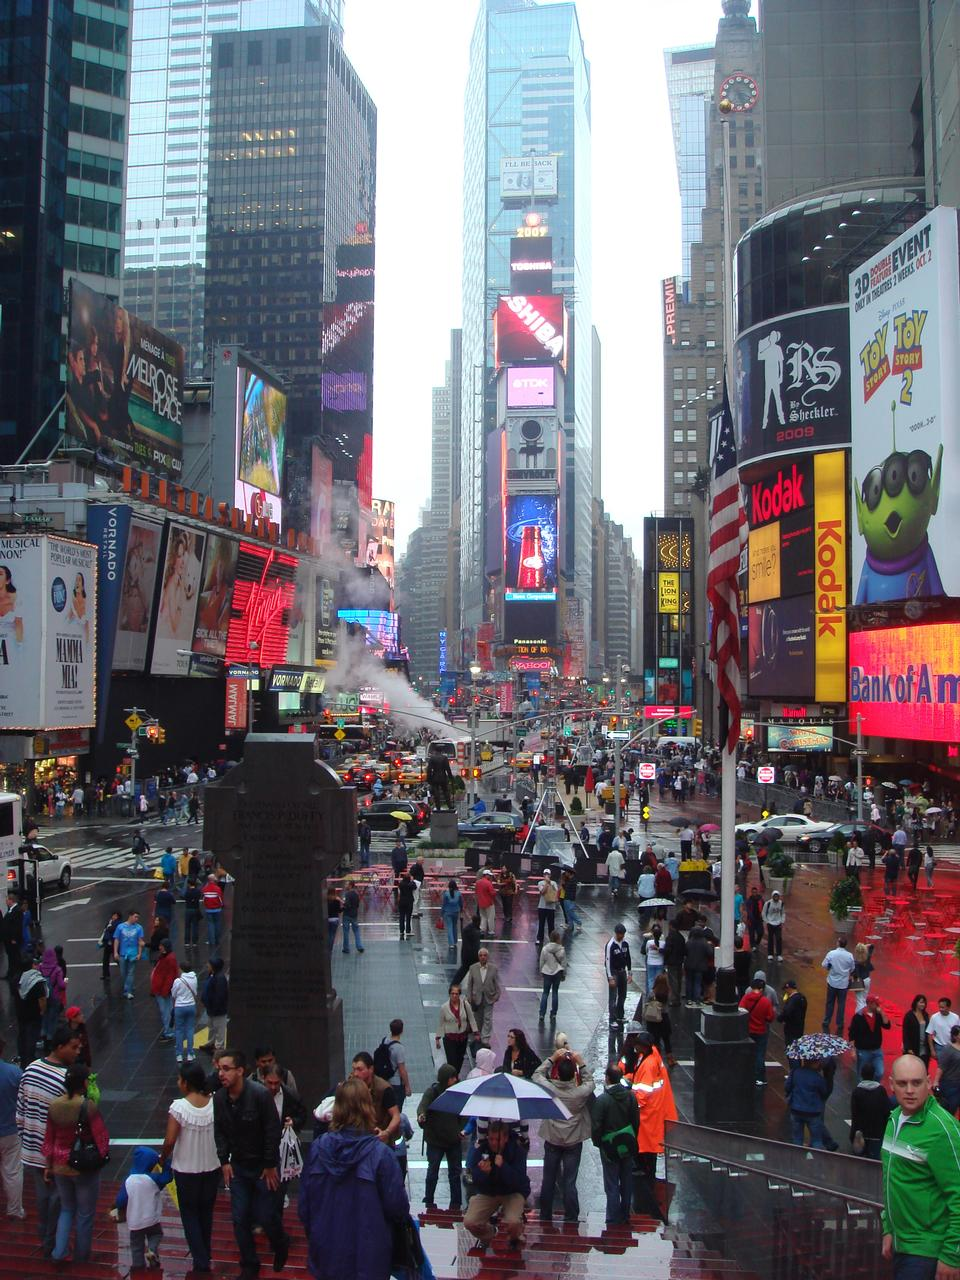 Times Square, descritto con teatri di Broadway e LED animato